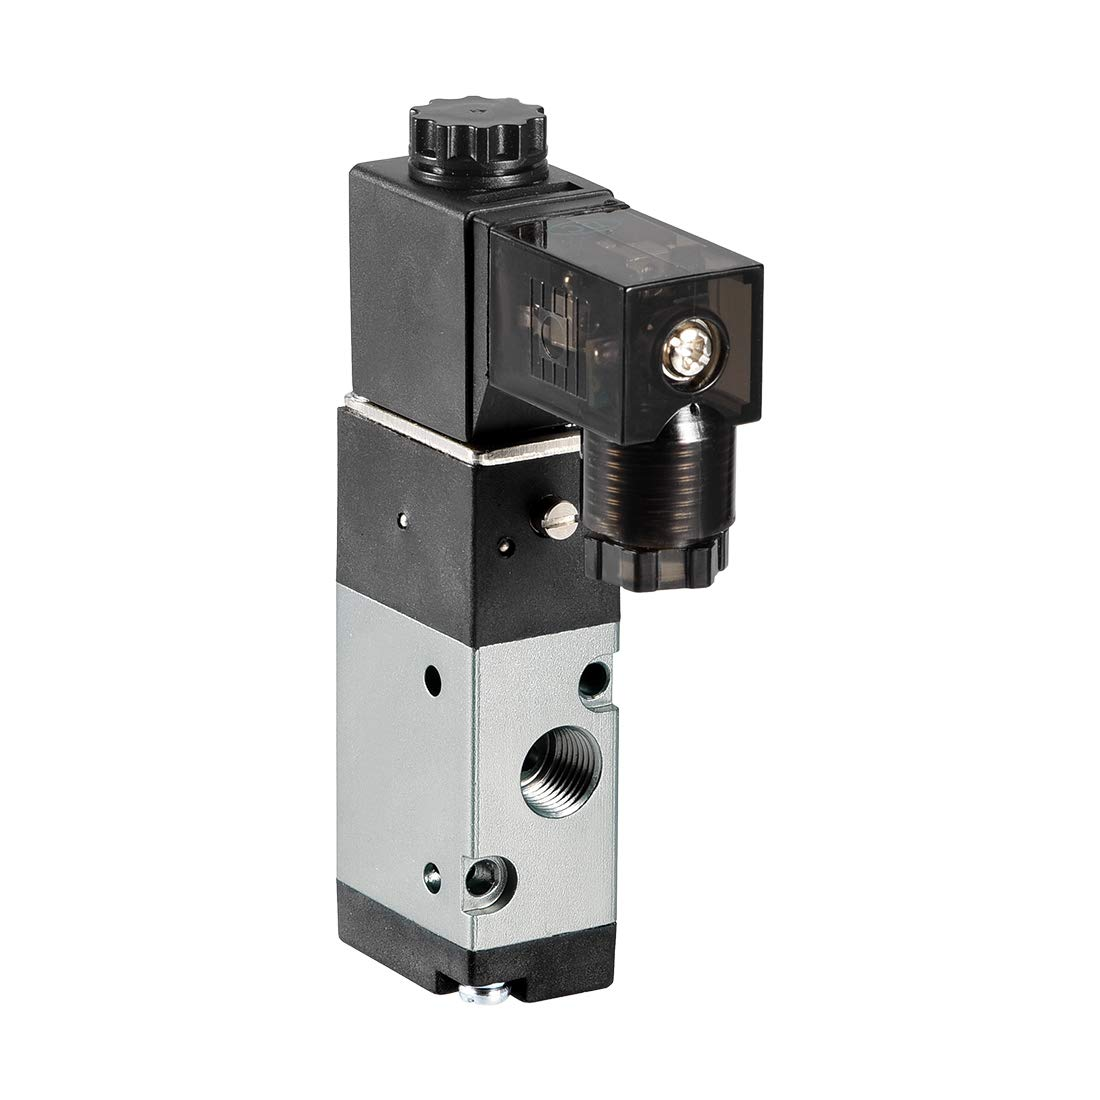 uxcell DC 12V 3 Way 2 Position 1//8 inches PT,Pneumatic Air Control NC Solenoid Valve,Internally Single Piloted Acting Type,3V110-06